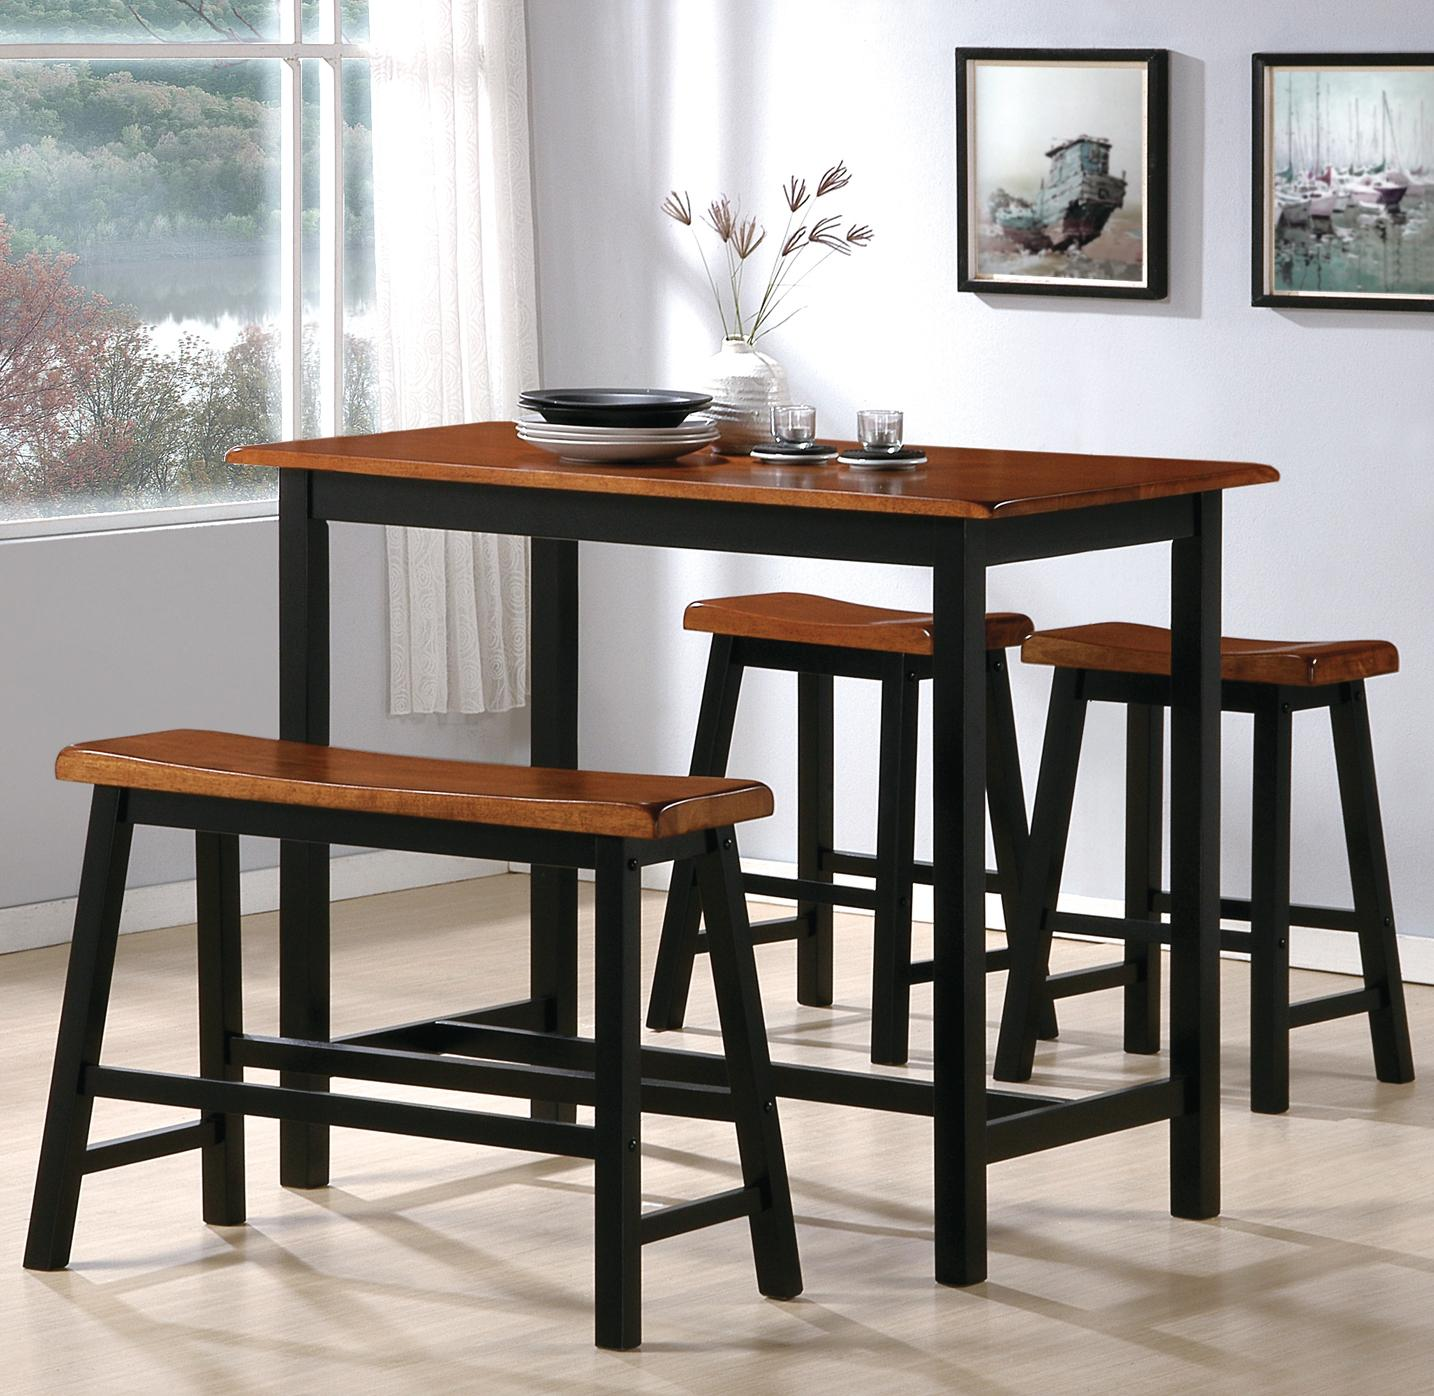 Get Counter Height Pub Table Set PNG